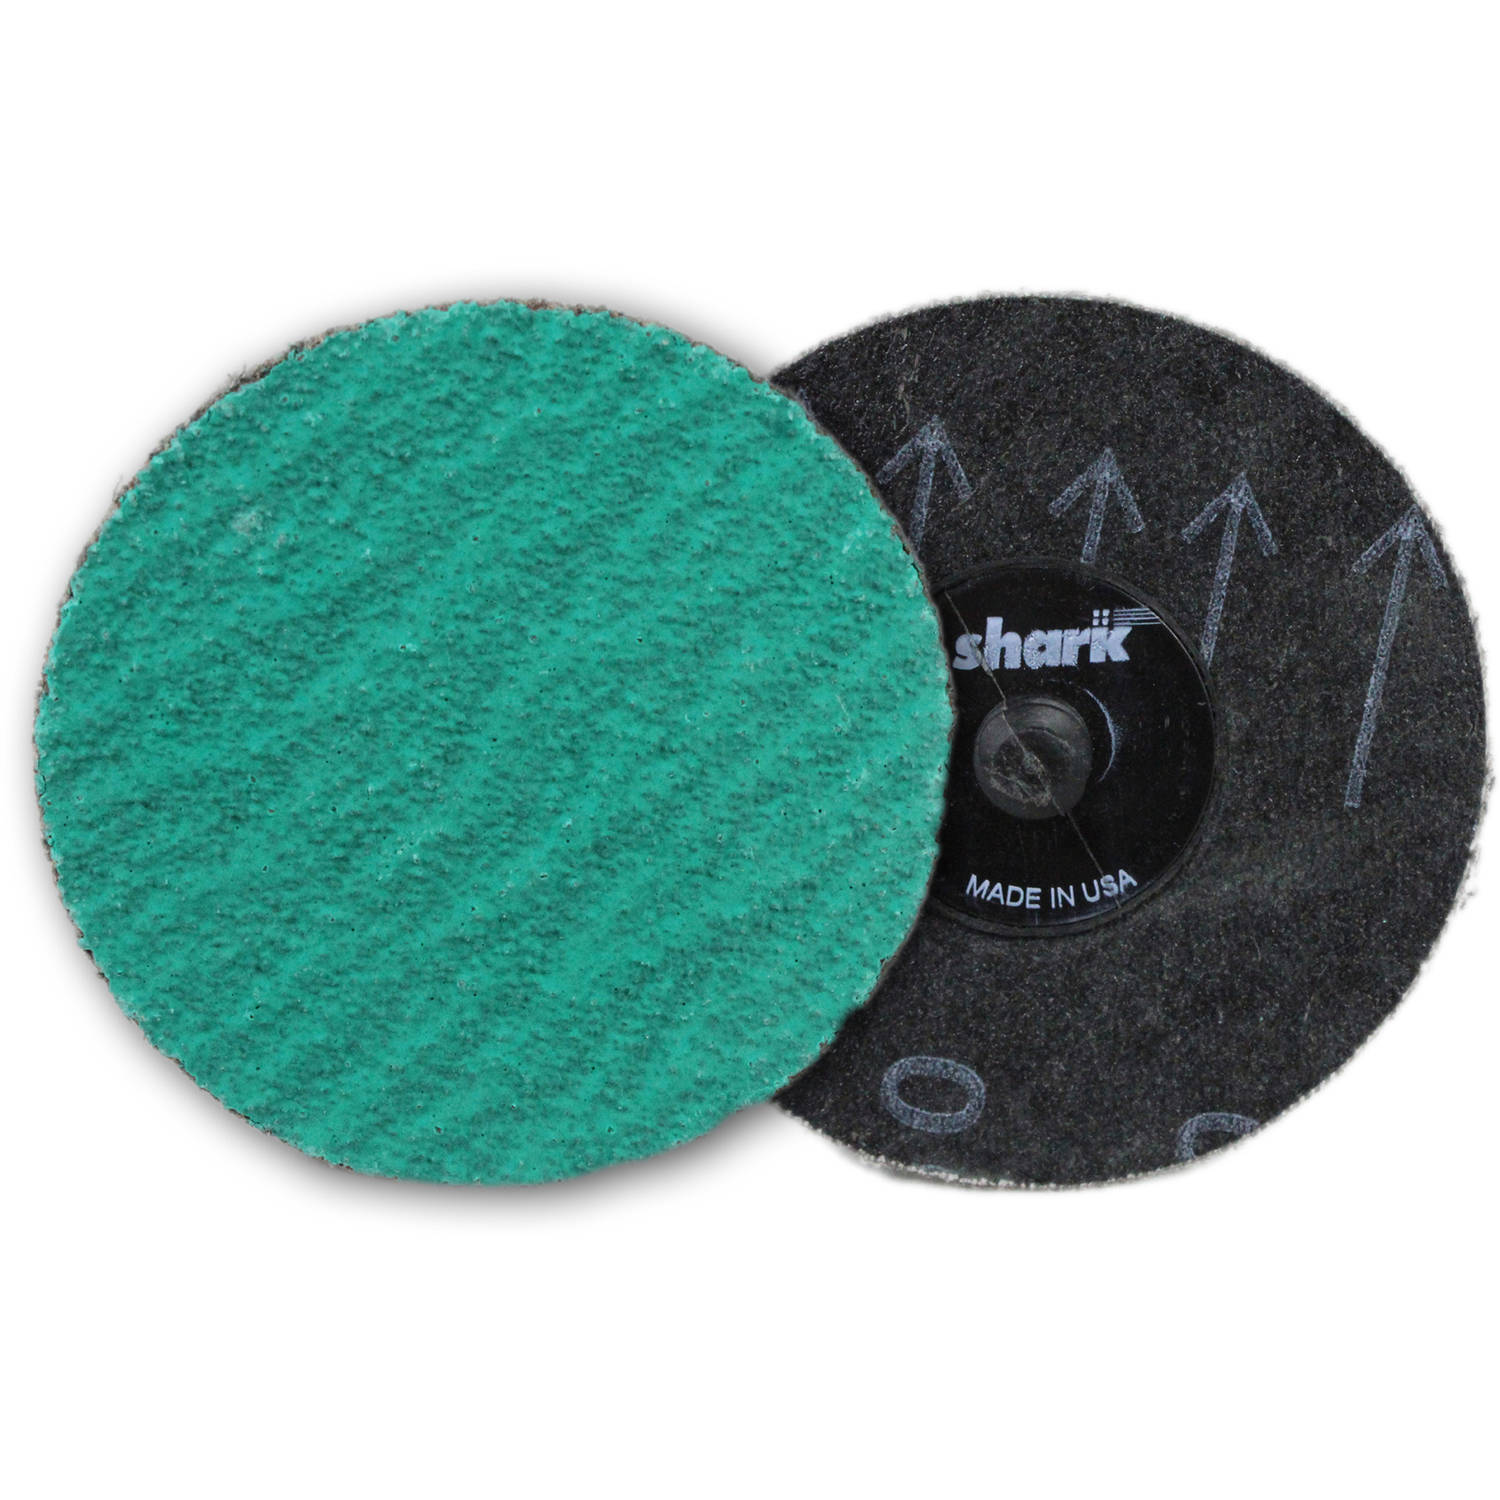 "Shark Green Zirconia Mini Grinding Discs, 3"", 25-Pack, 50 Grit"